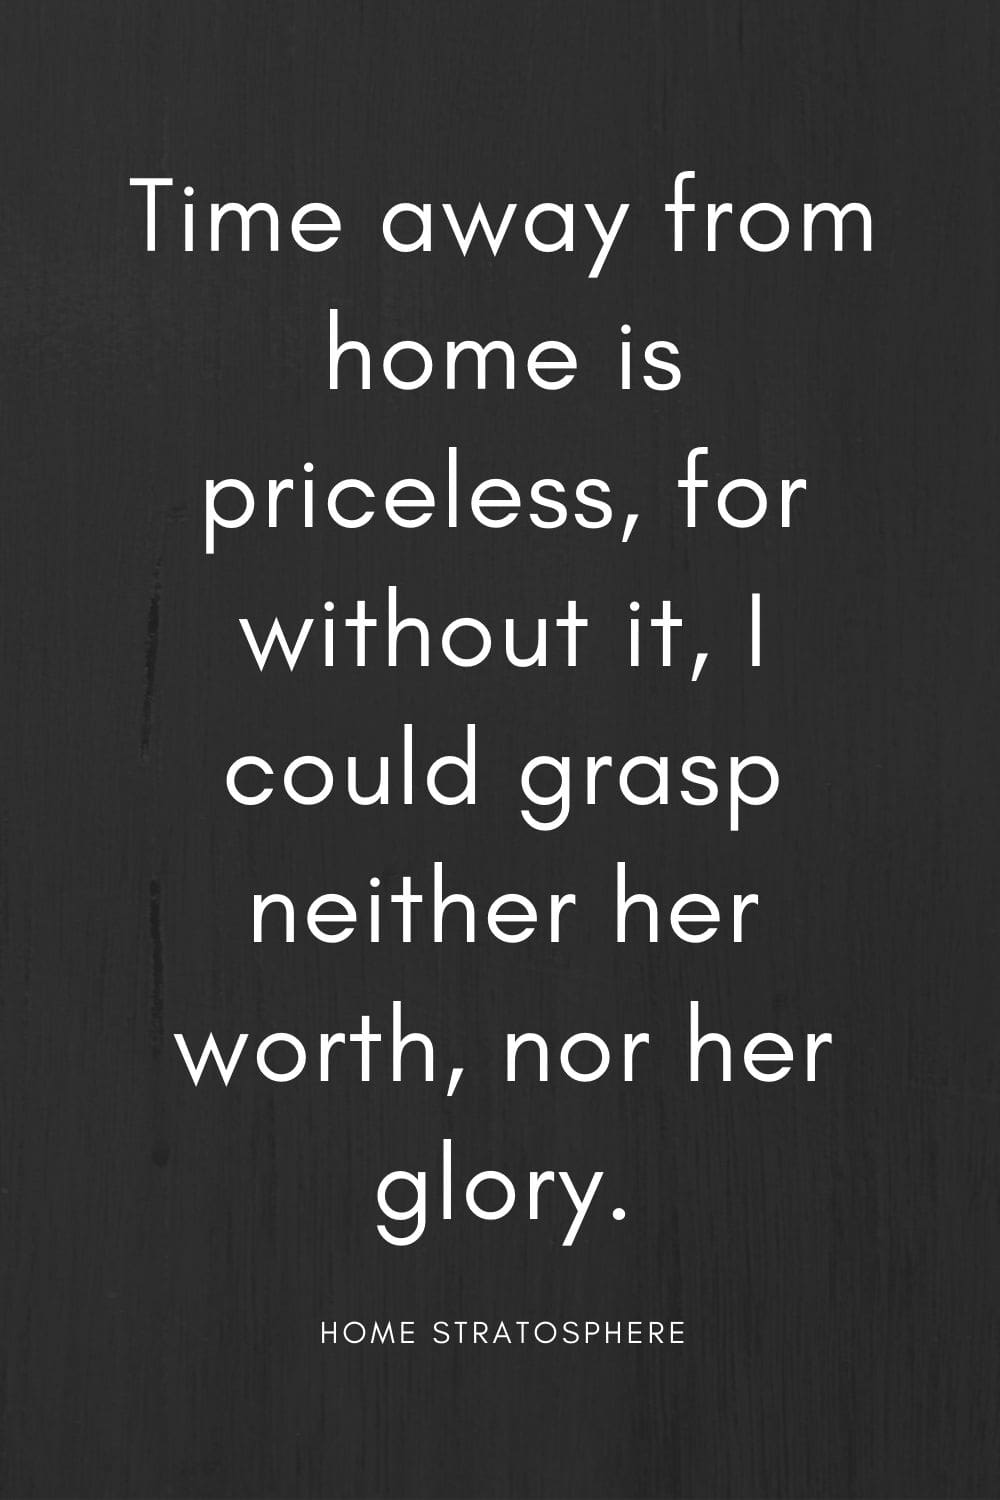 """Time away from home is priceless, for without it, I could grasp neither her worth, nor her glory."""